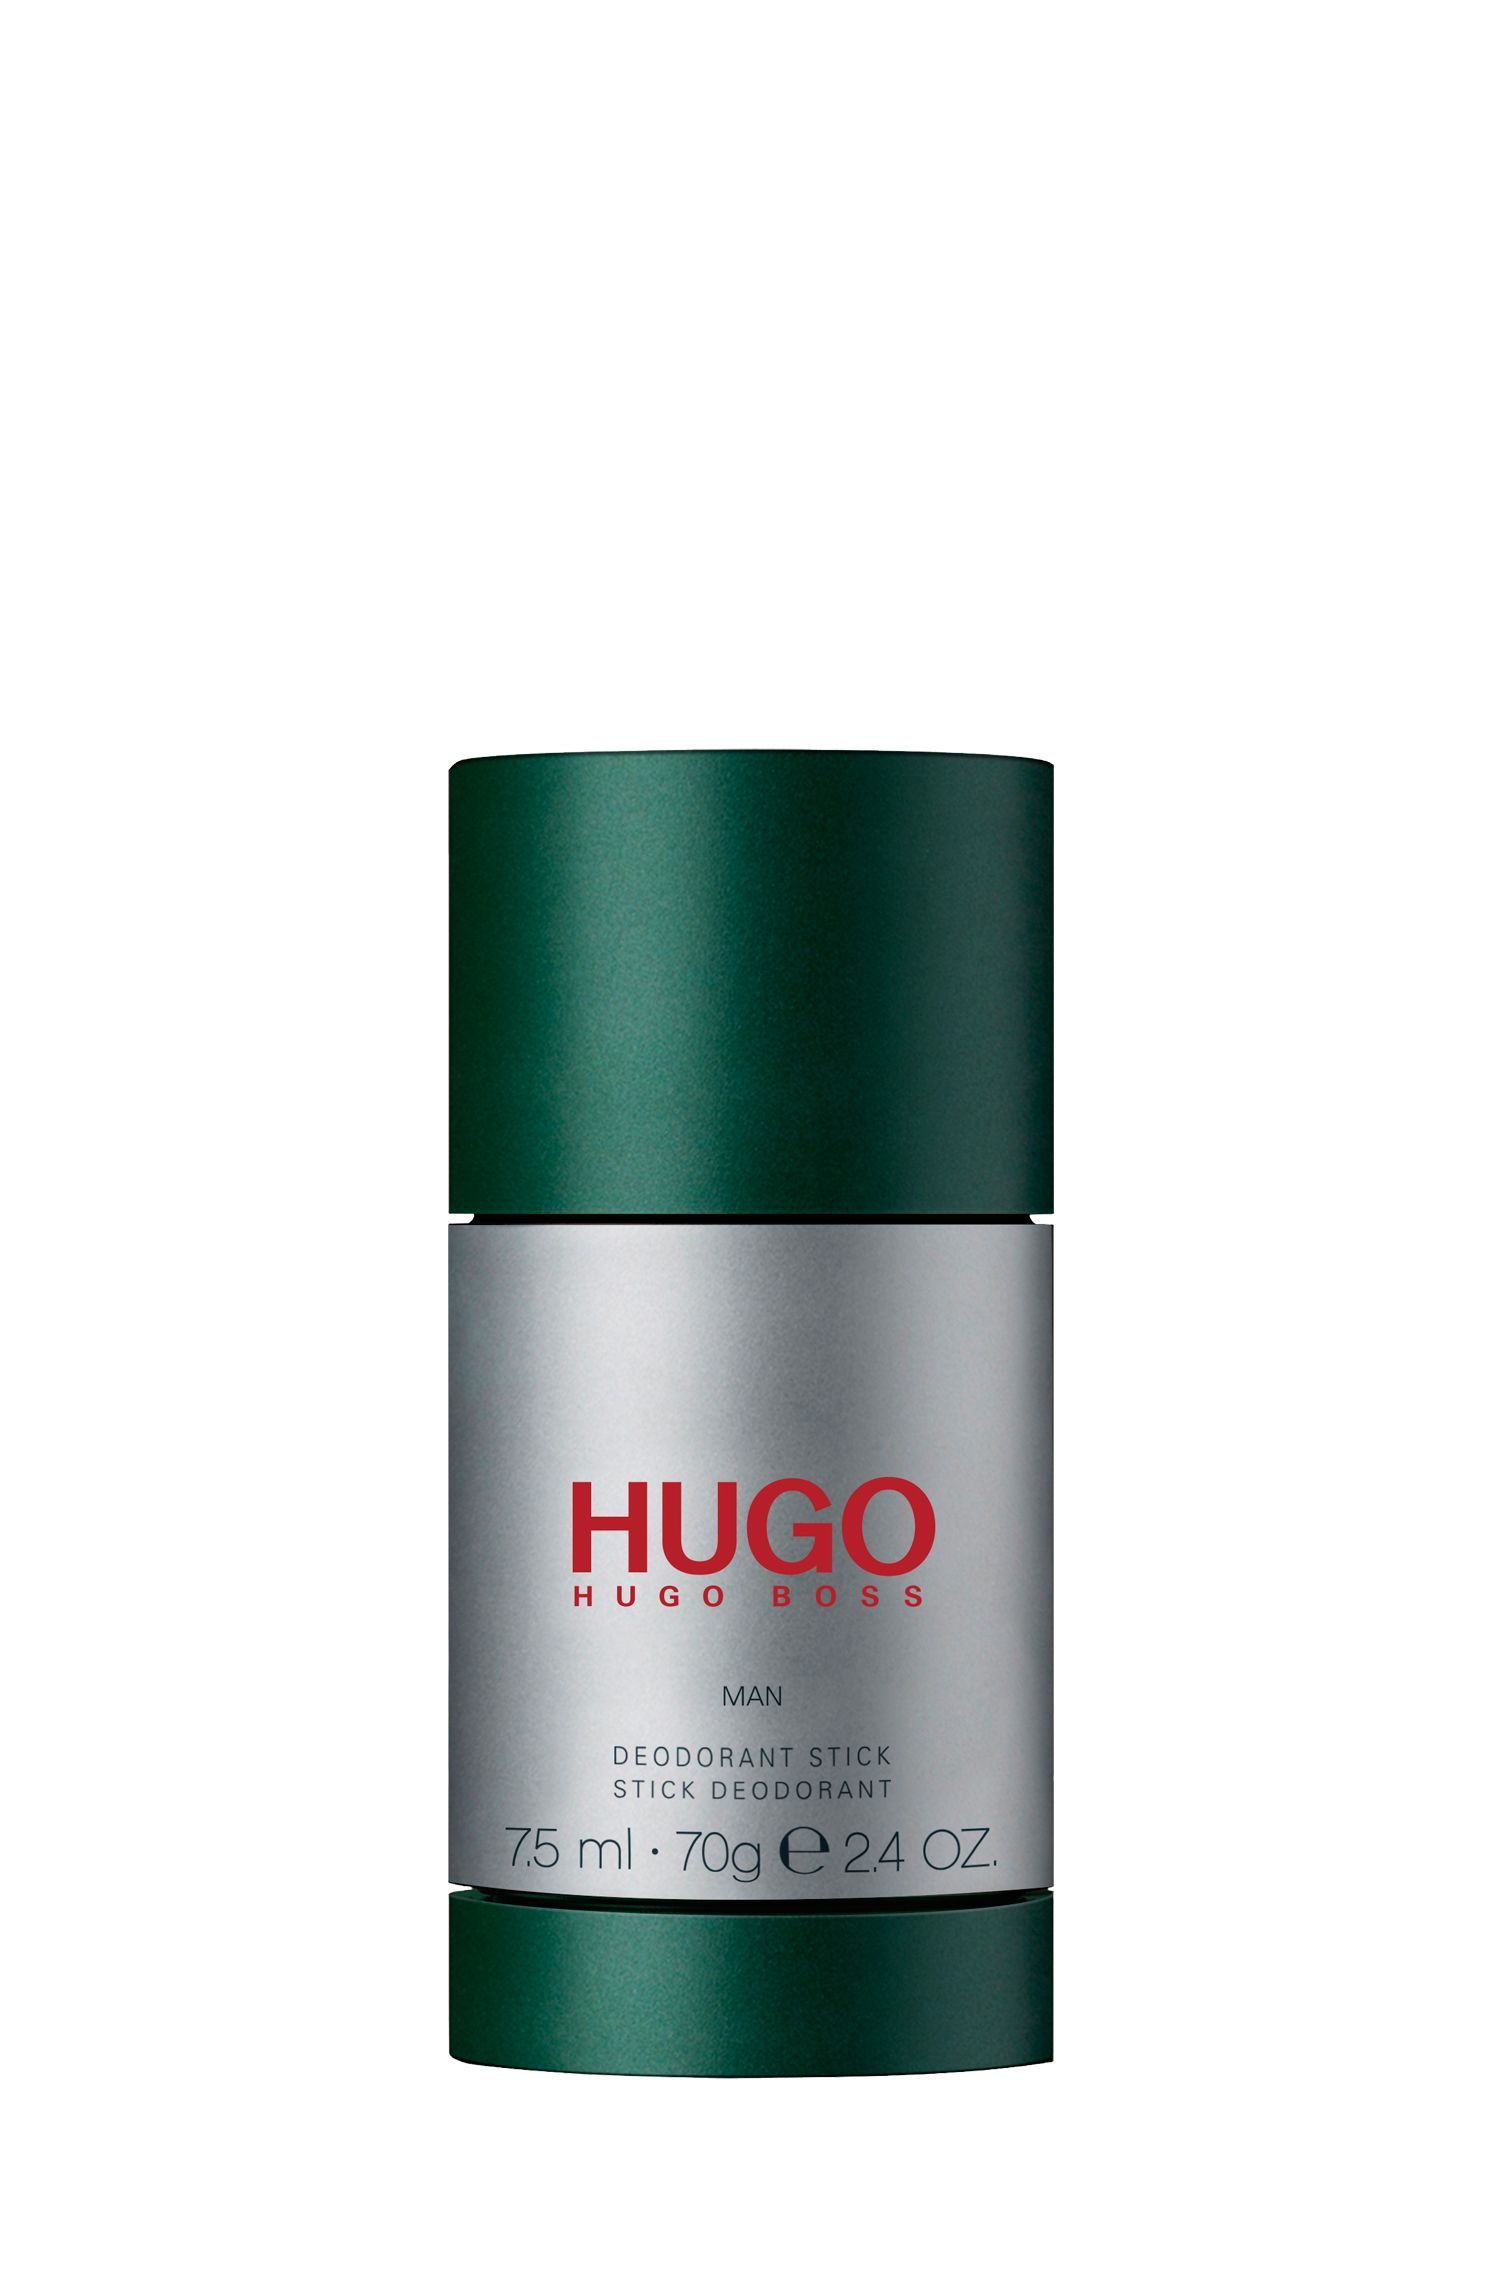 Deodorante stick HUGO Man da 75 ml